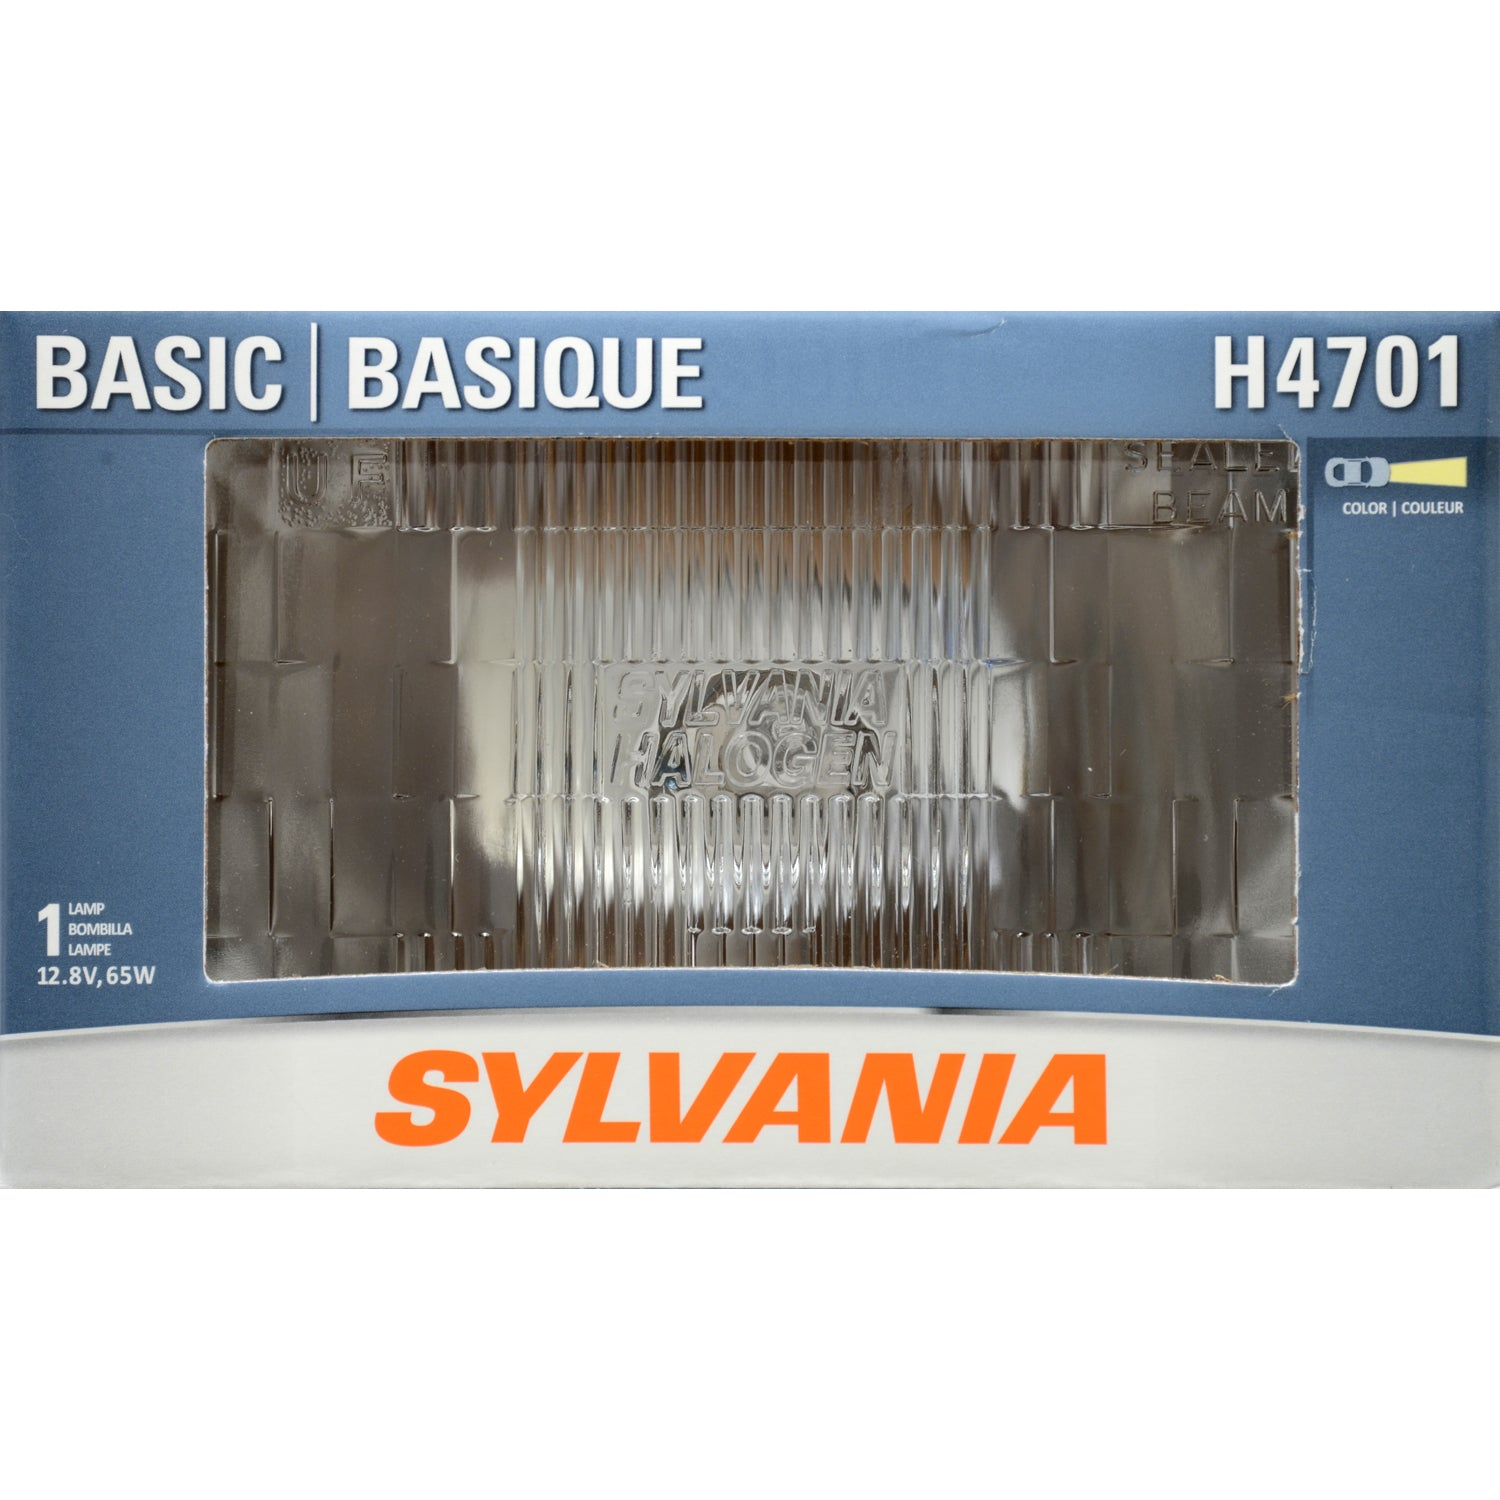 SYLVANIA H4701 UF Halogen Headlight 92x150 Automotive Bulb